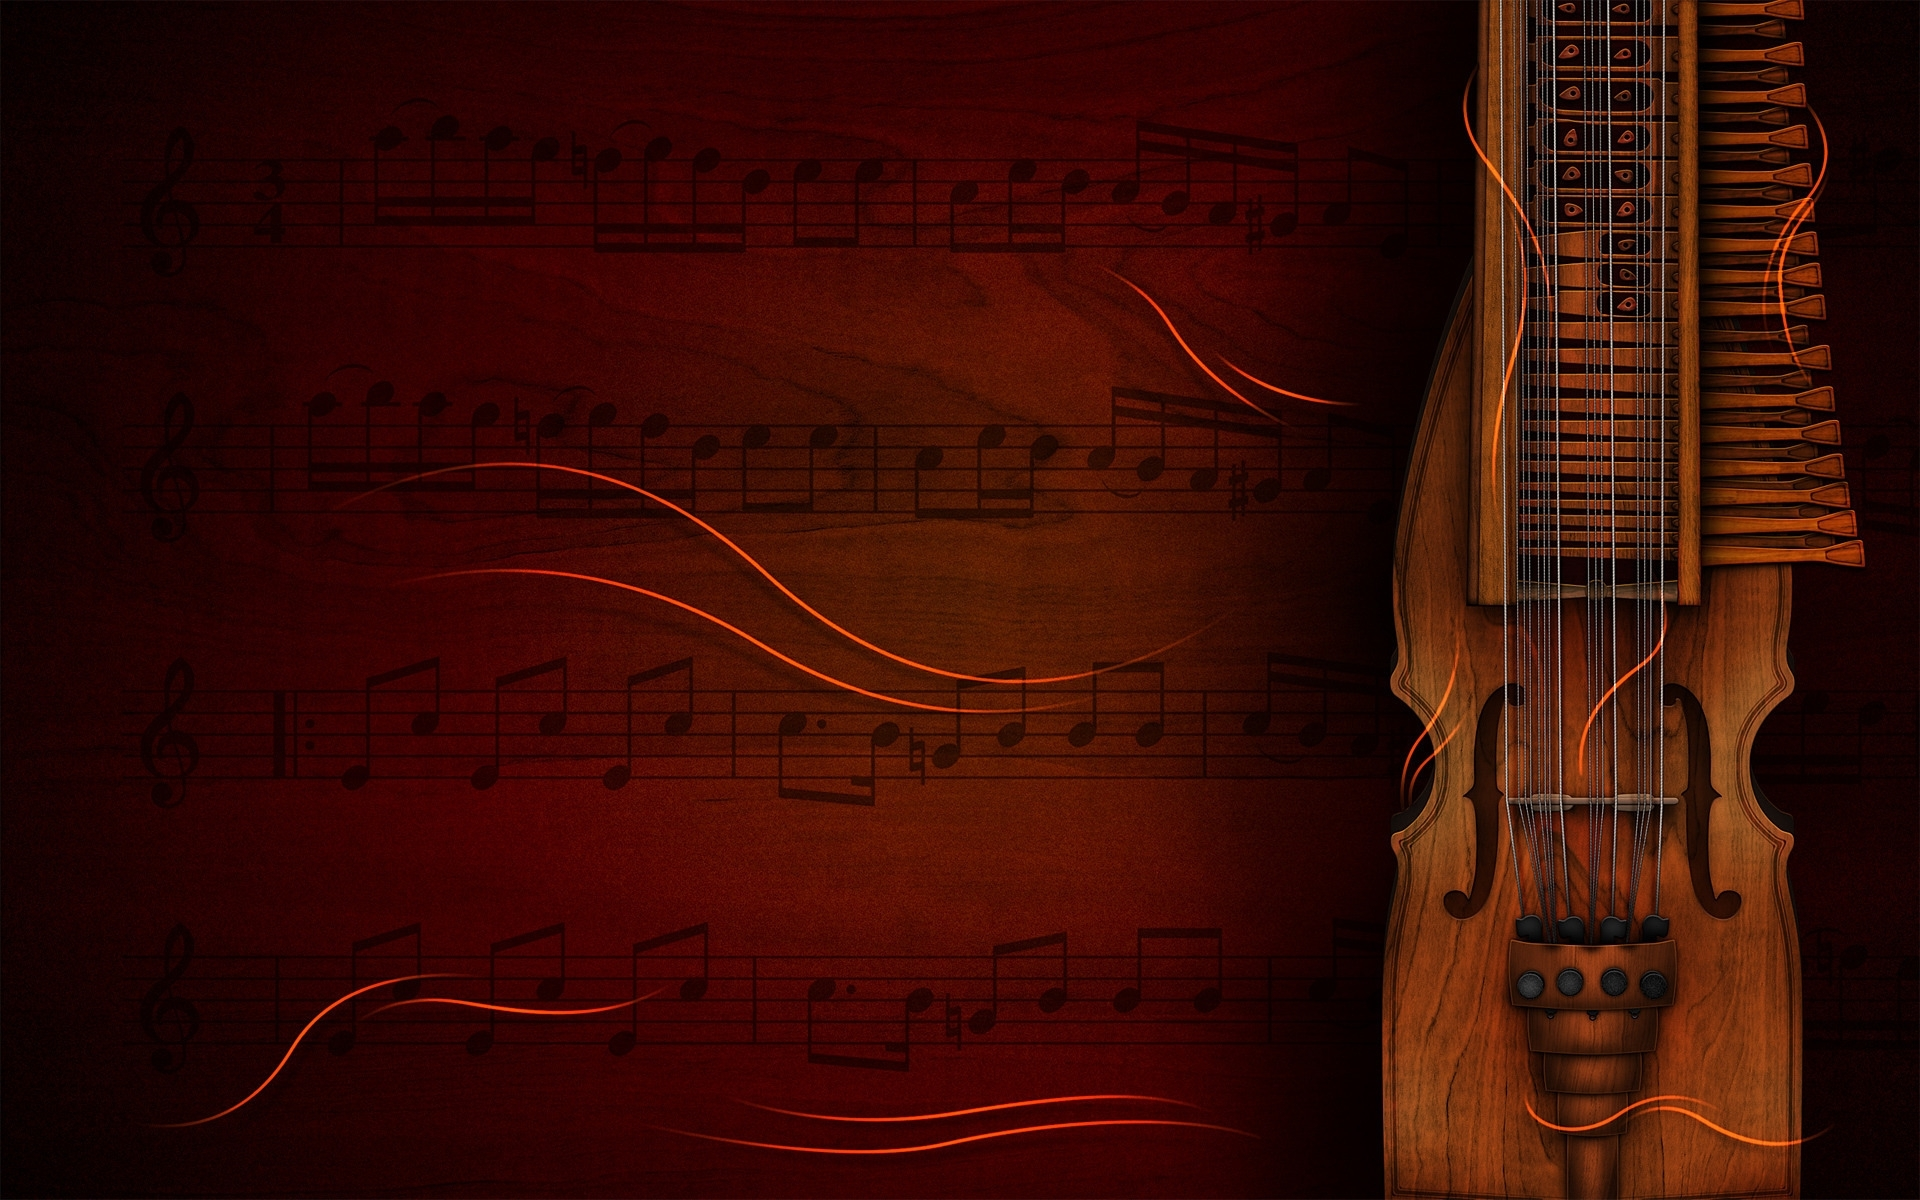 Wallpapers Hd Musica Clasica - Musical Instruments Background , HD Wallpaper & Backgrounds